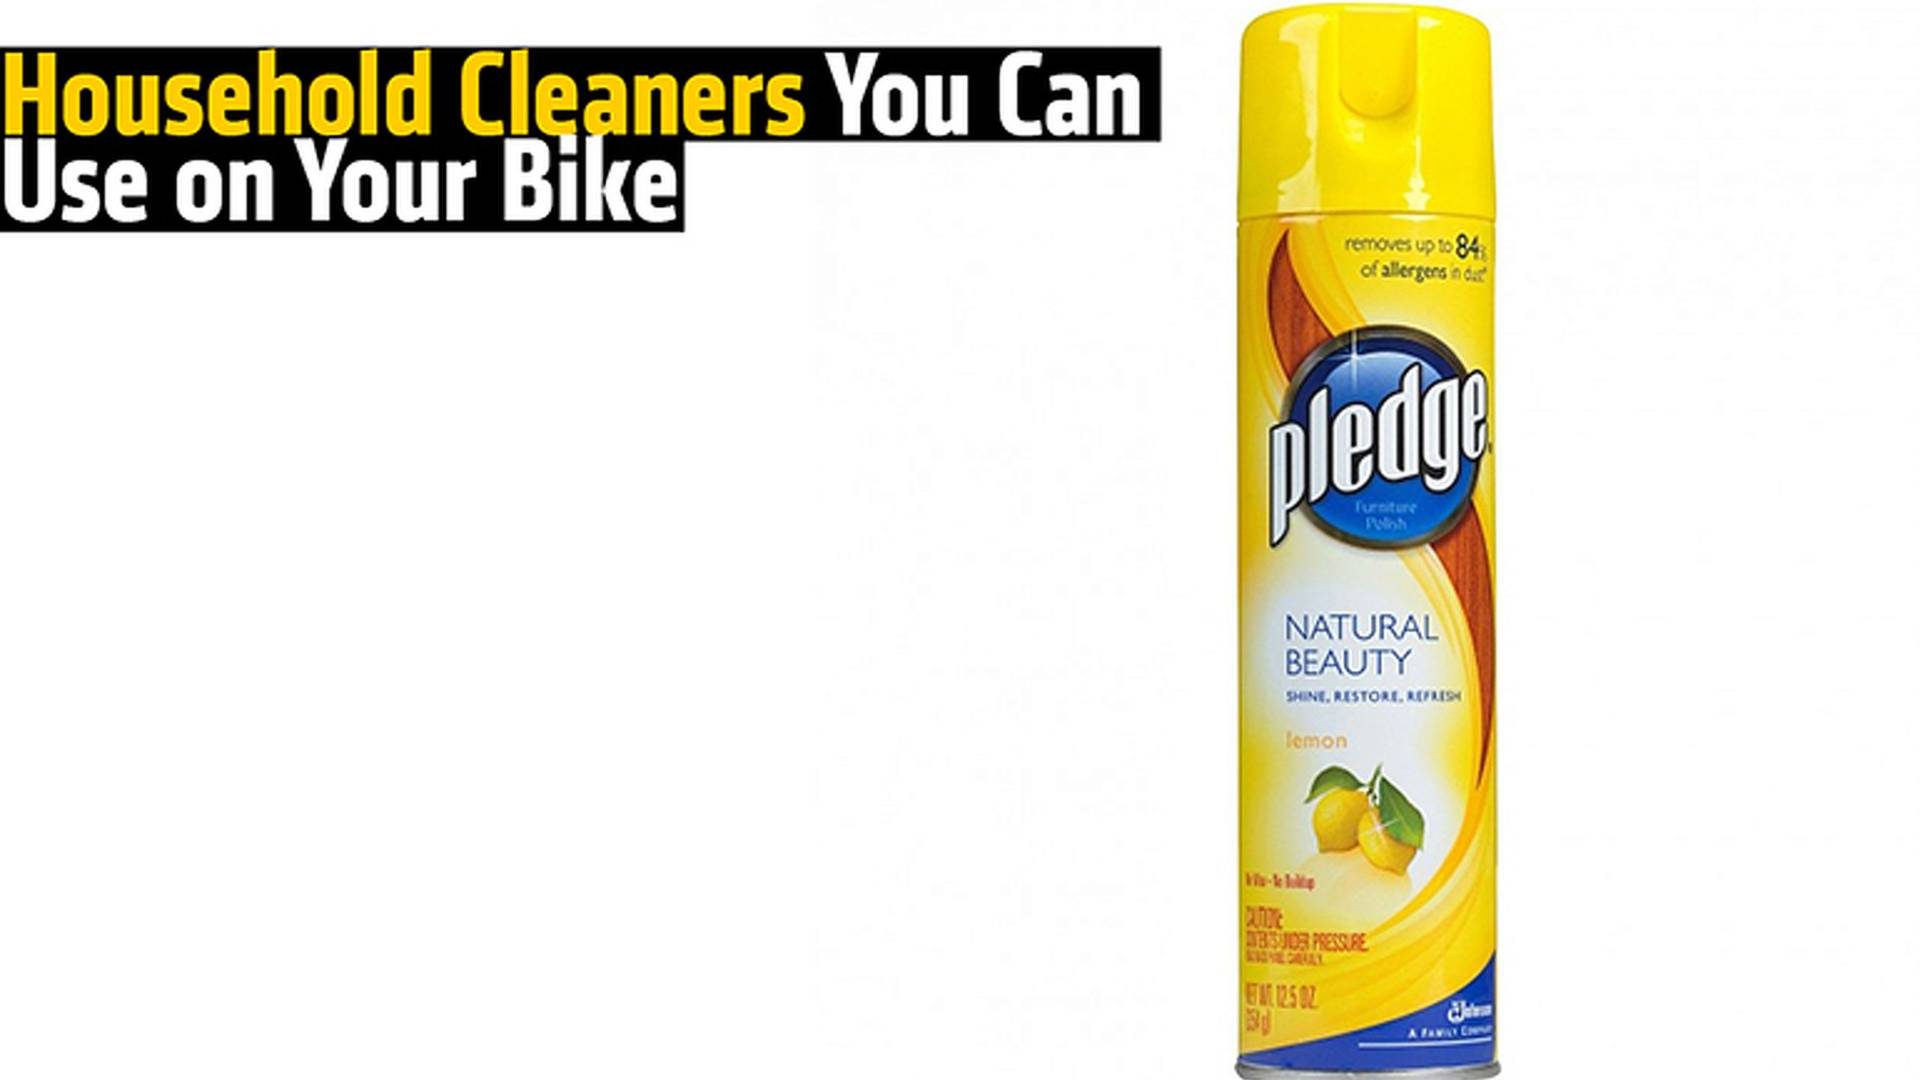 Household Cleaners You Can Use on Your Bike